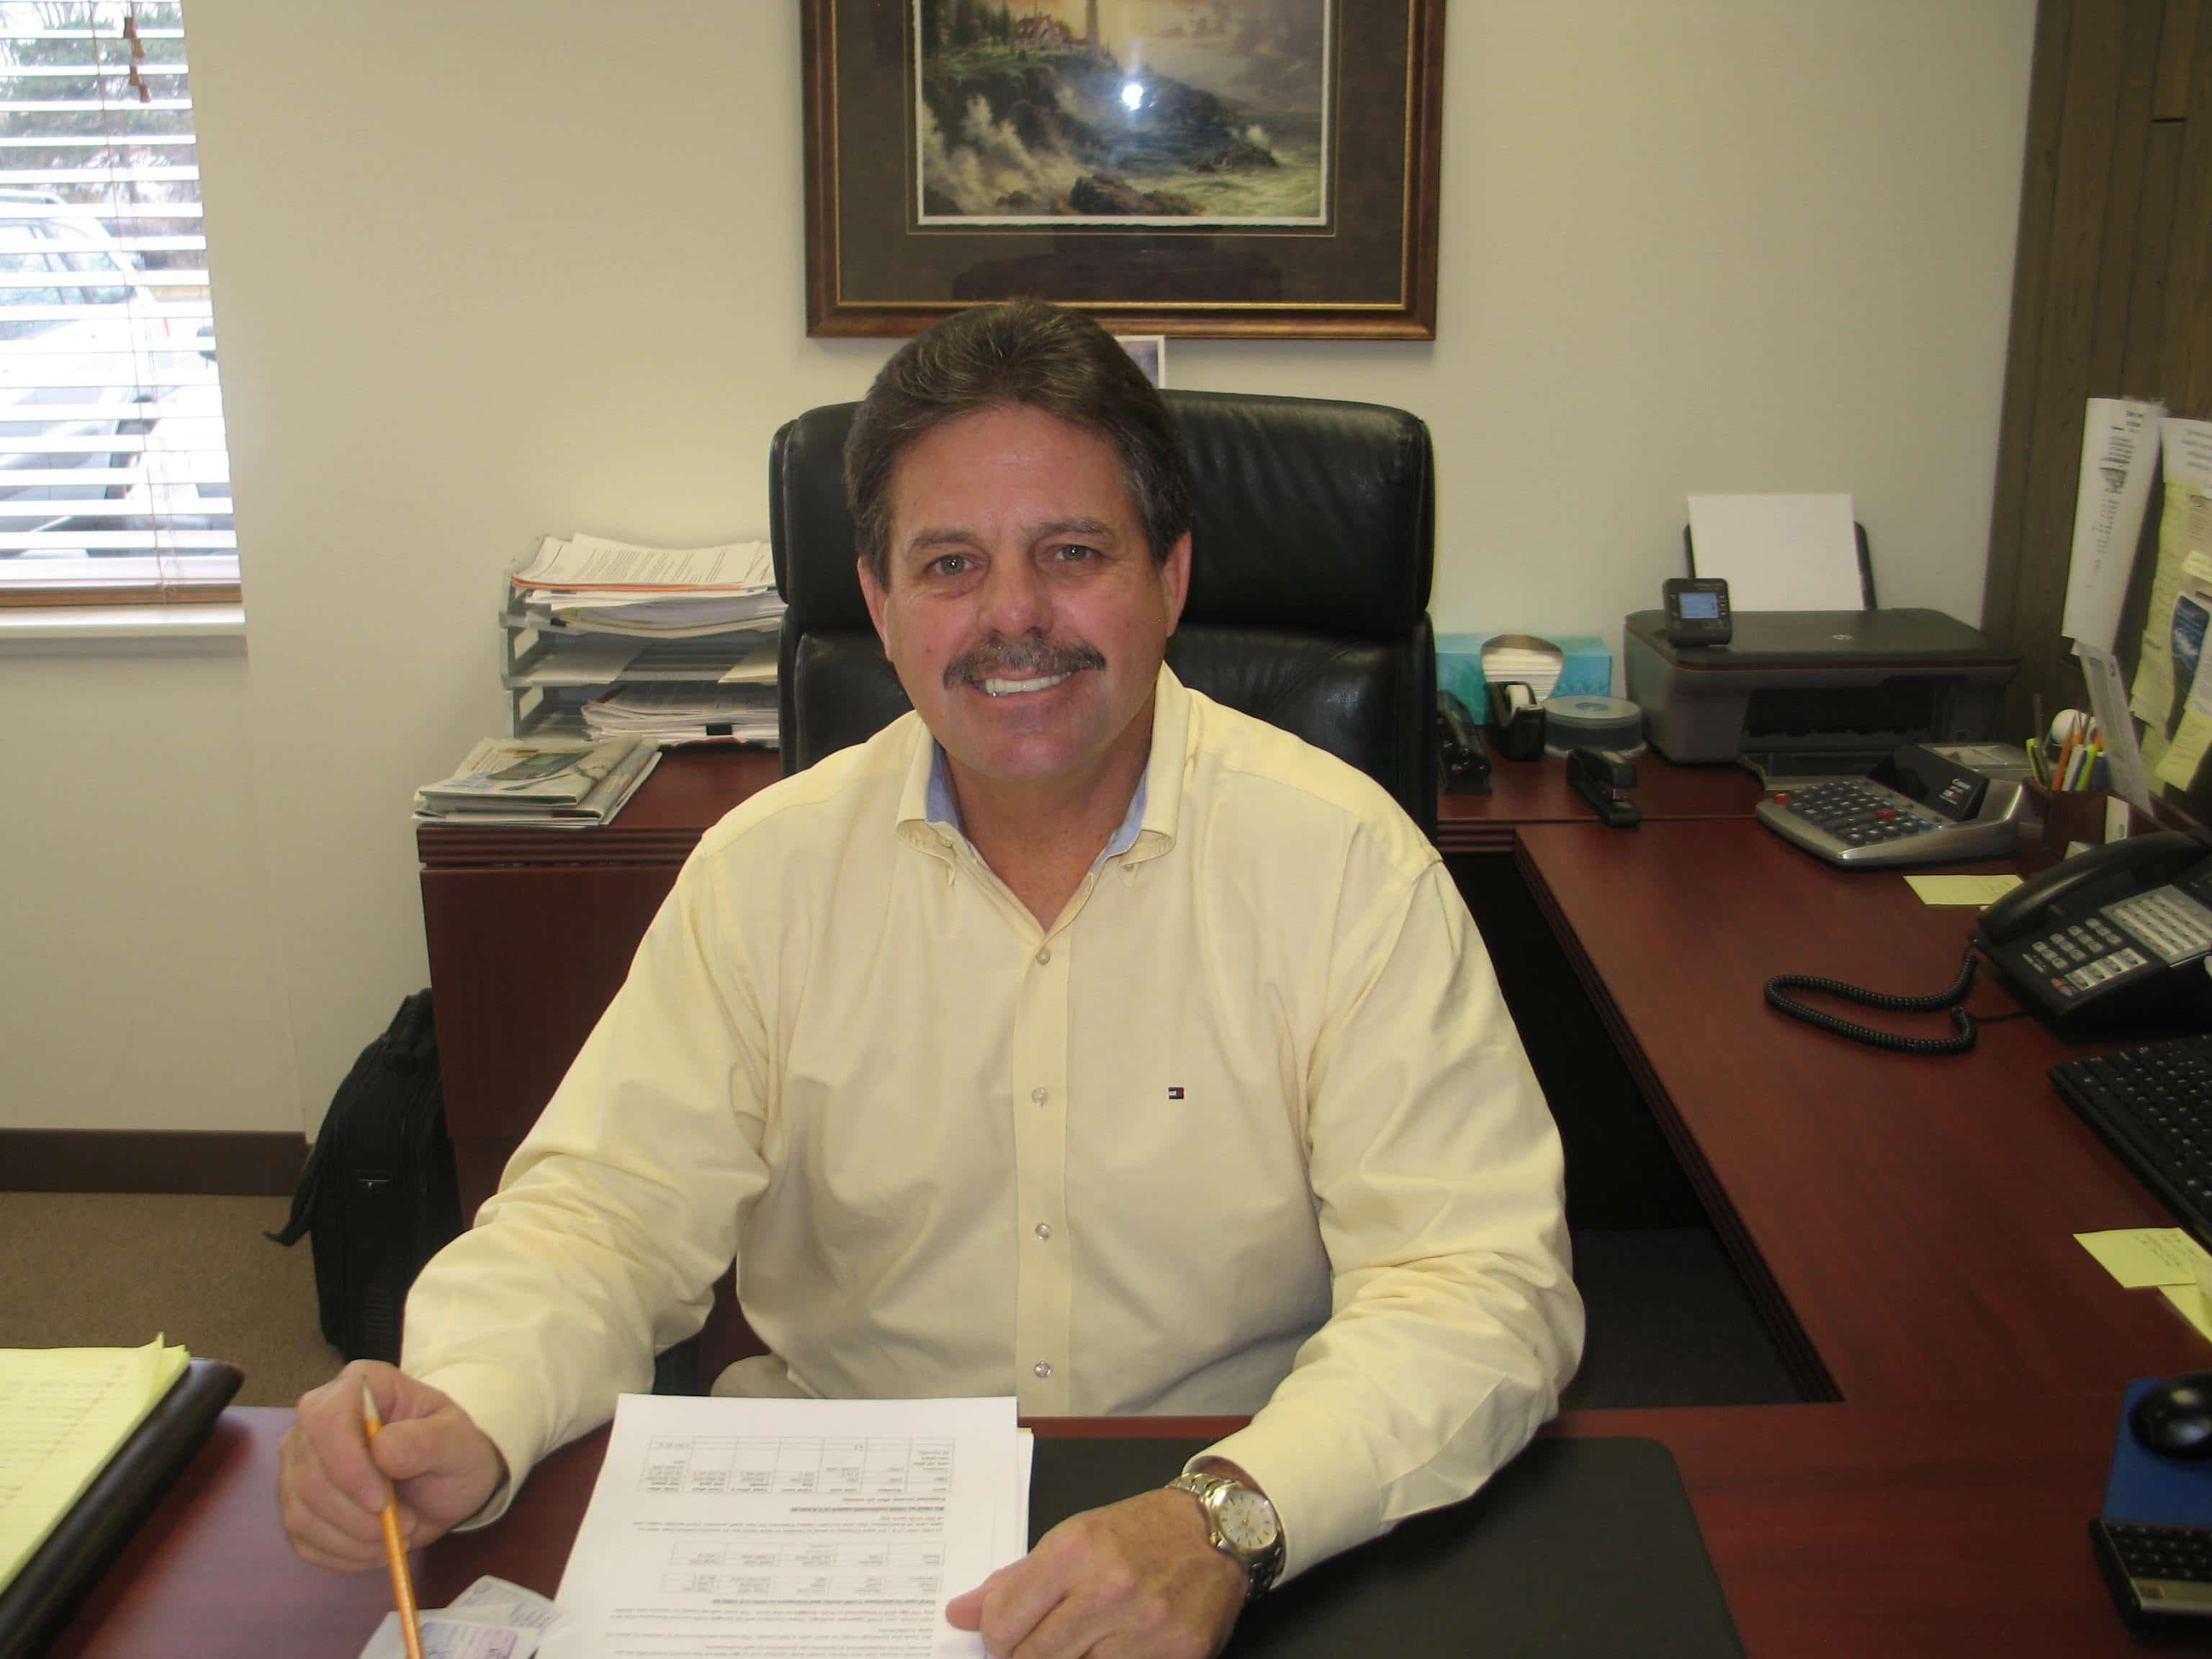 Bob Rankin, President and Mortgage Broker at Northeast Funding Services